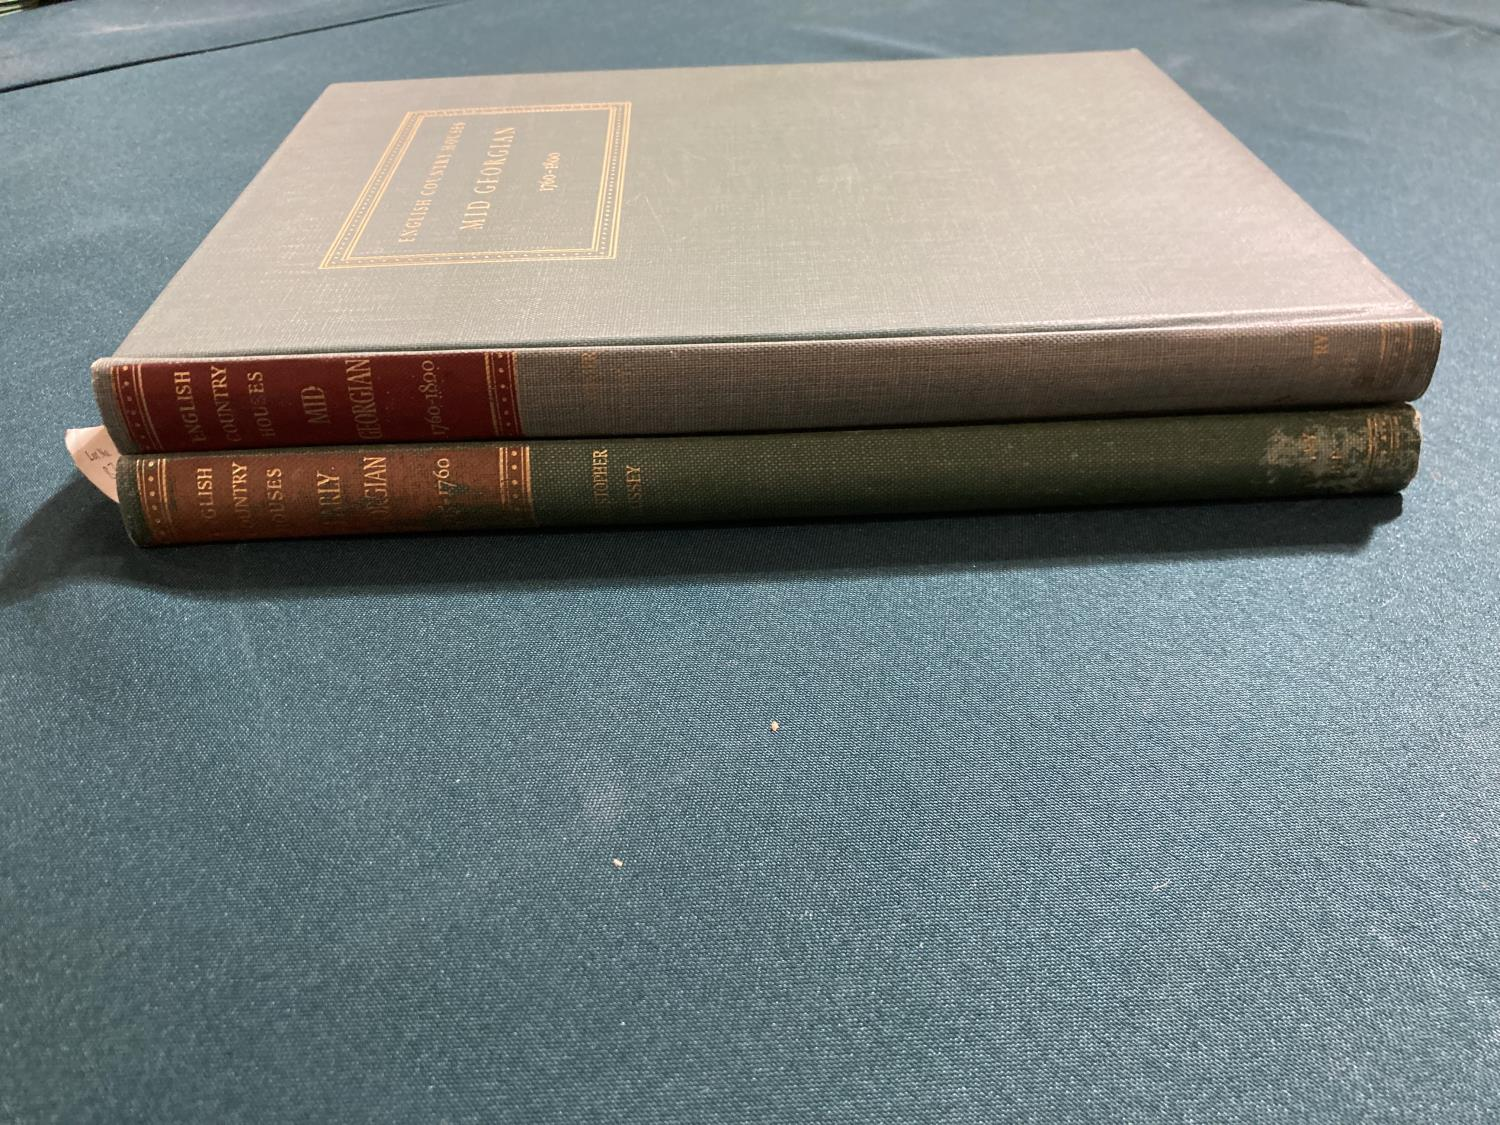 Bolton, Arthur T. The Architecture of Robert and James Adam, 2 volumes, first edition, plates, - Image 13 of 22